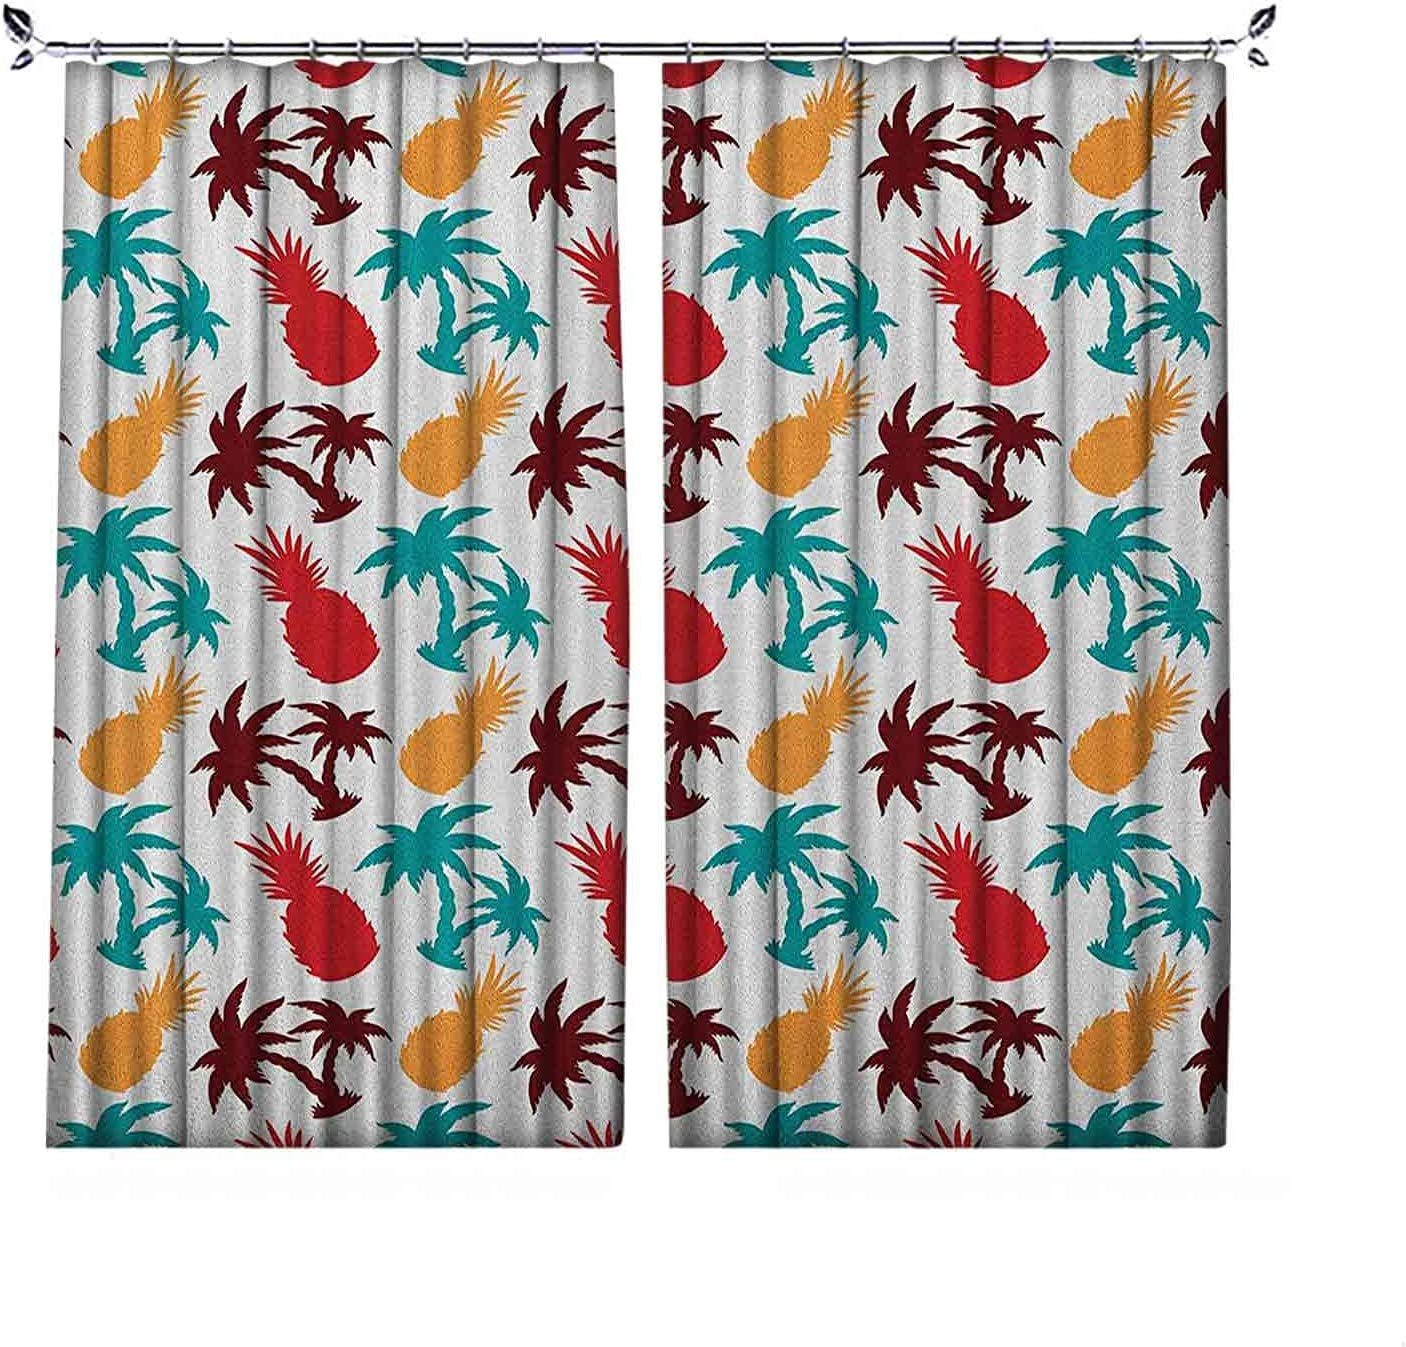 Room Darkening Pine Curtain Colored Lively Tropical Memphis Mall Multi New product